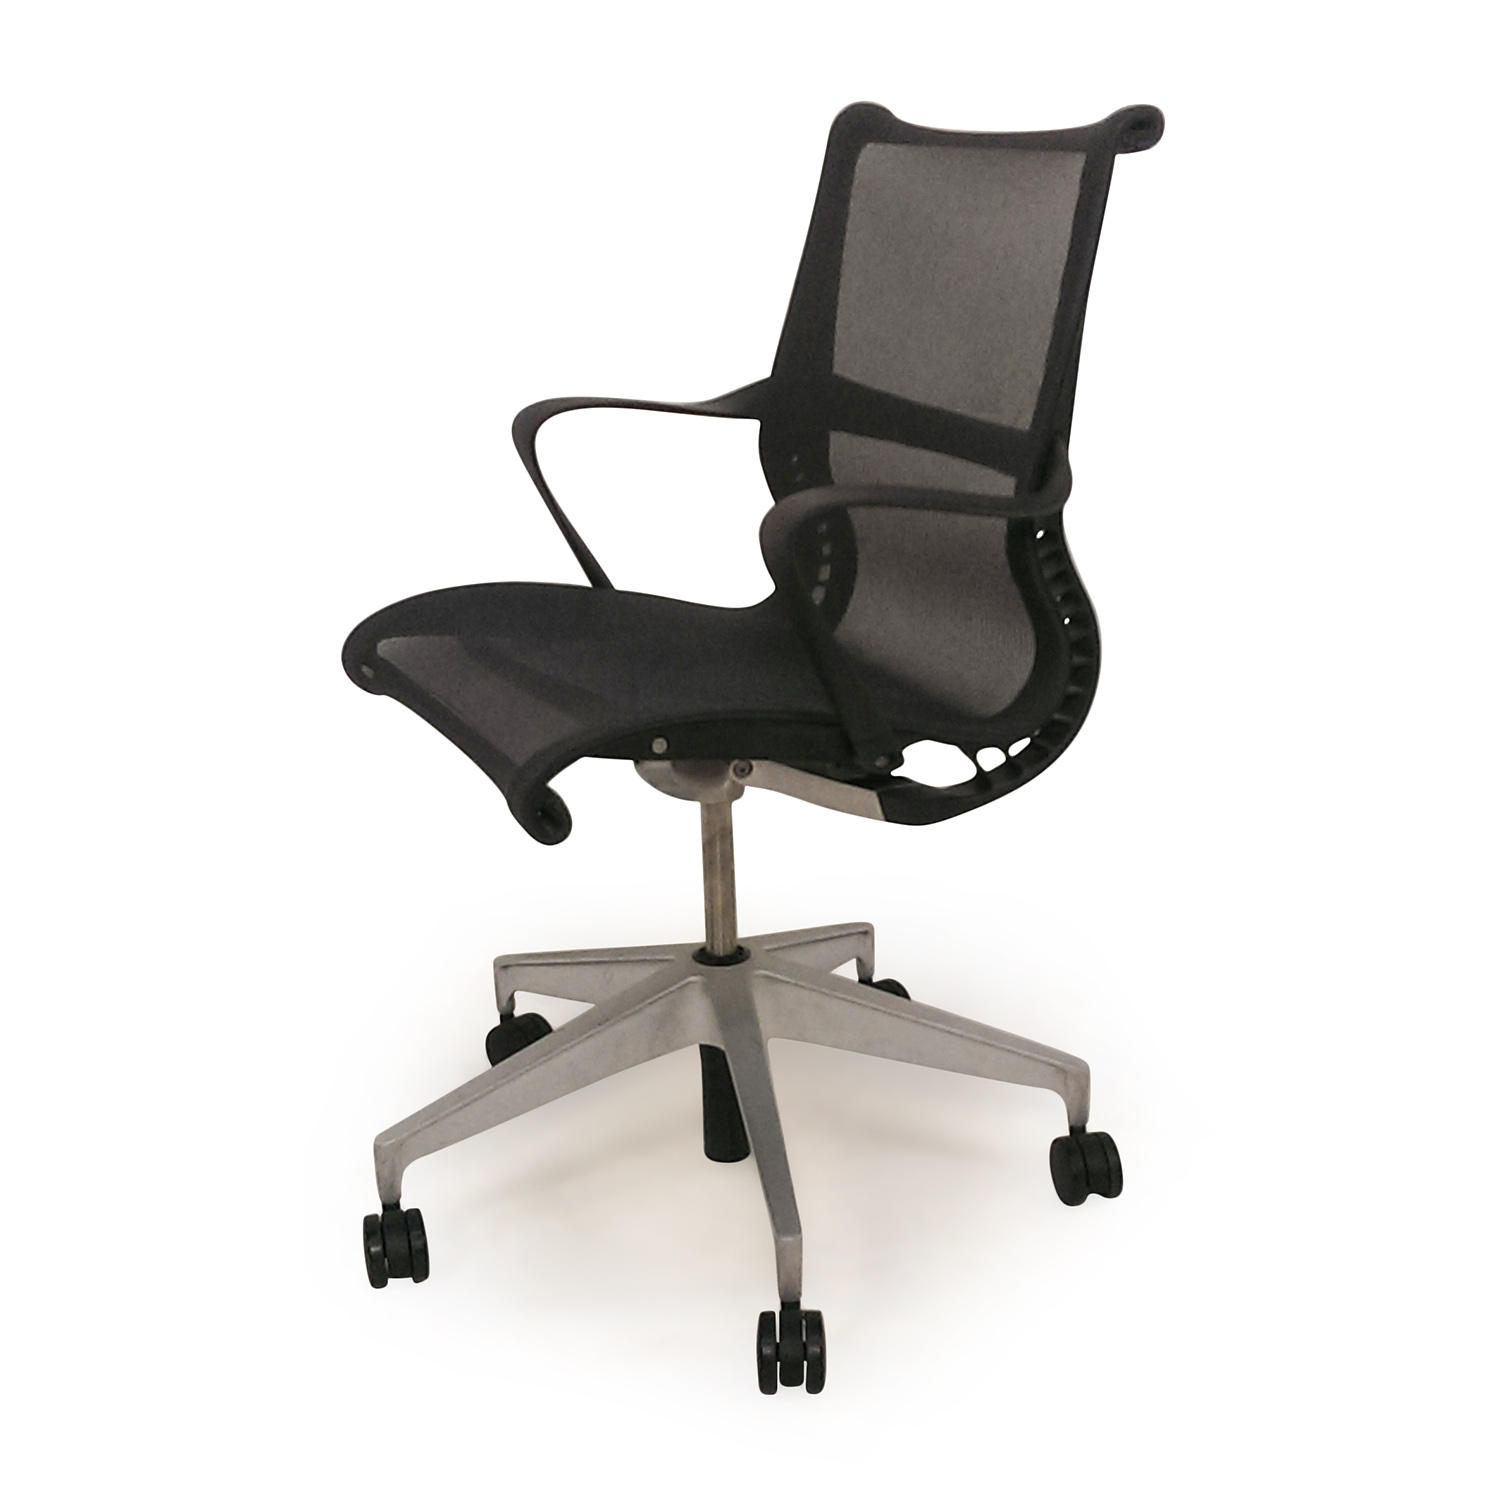 90 Off Ergonomic Mesh Computer Chair Chairs